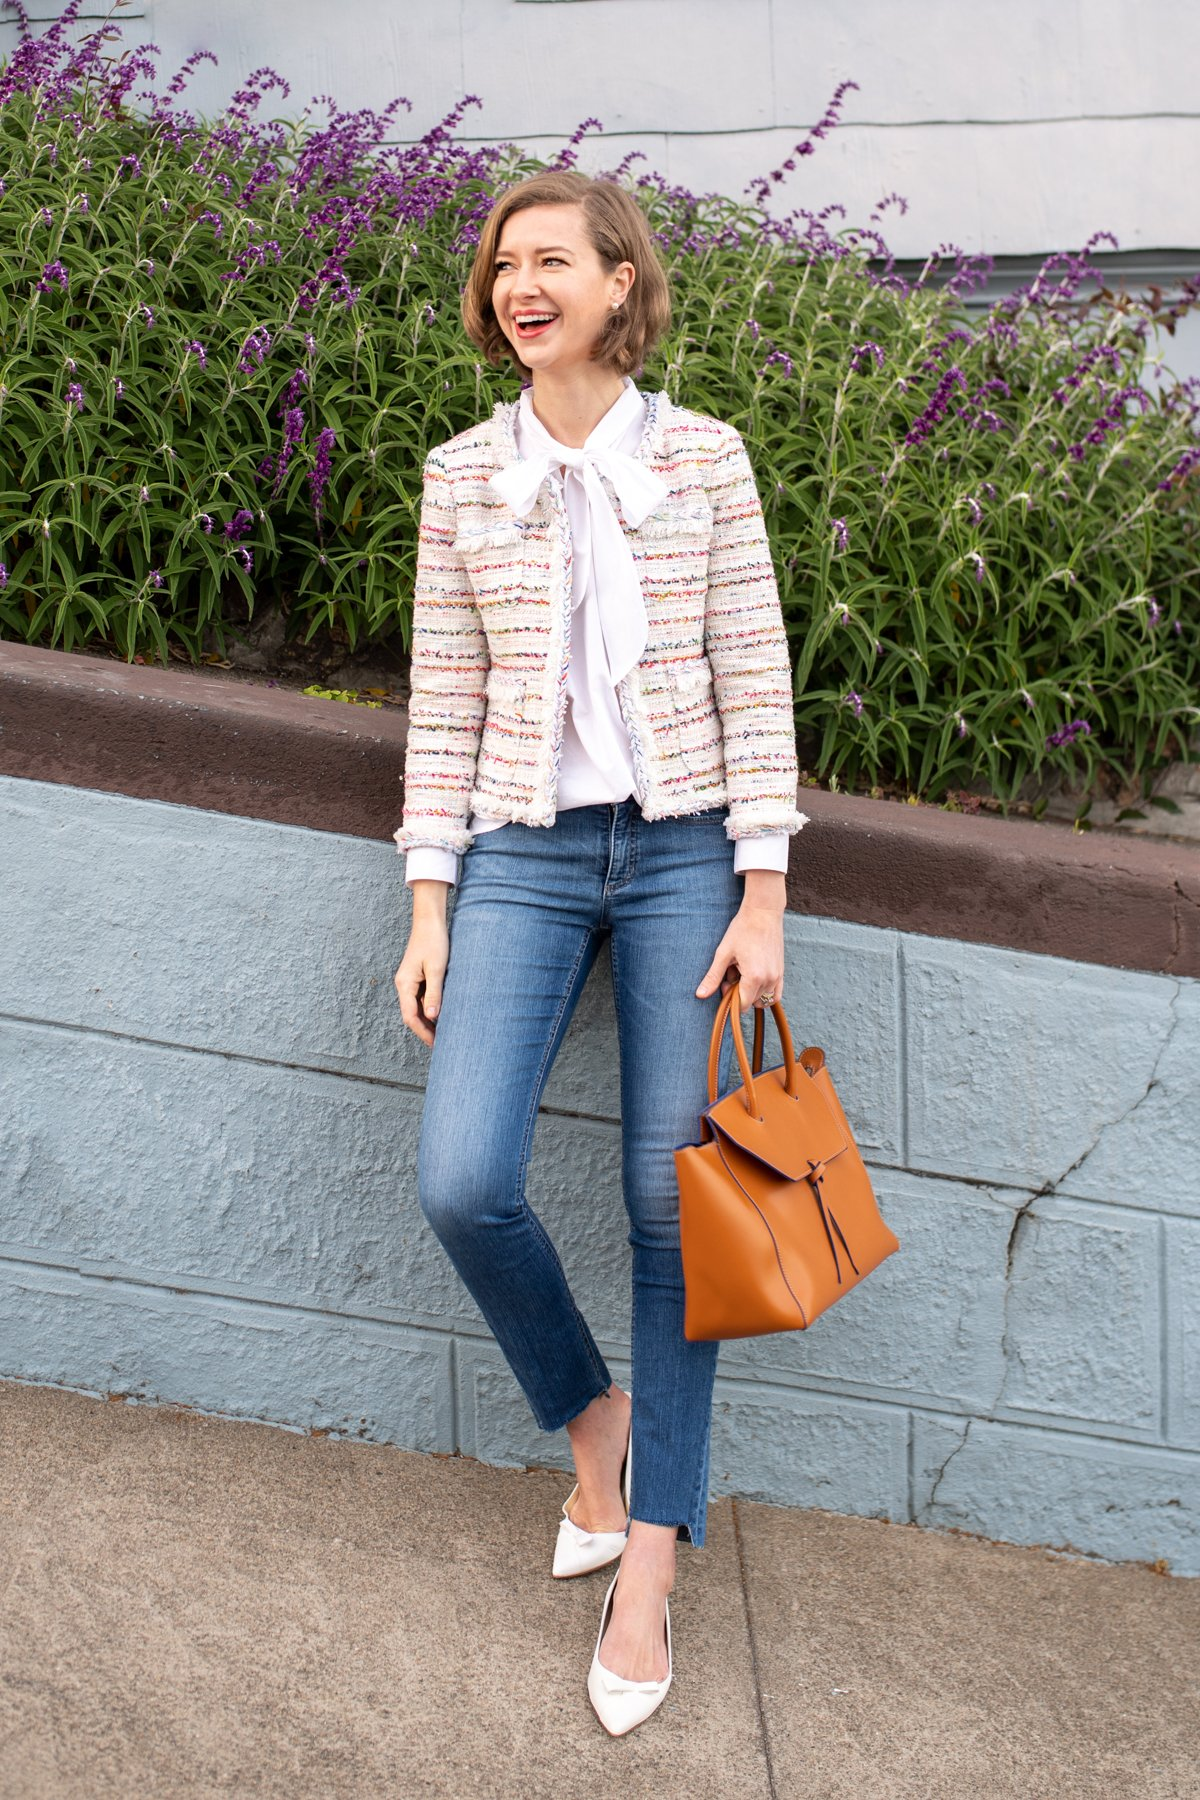 J.Crew Tweed Lady Jacket x Stacie Flinner-11.jpg